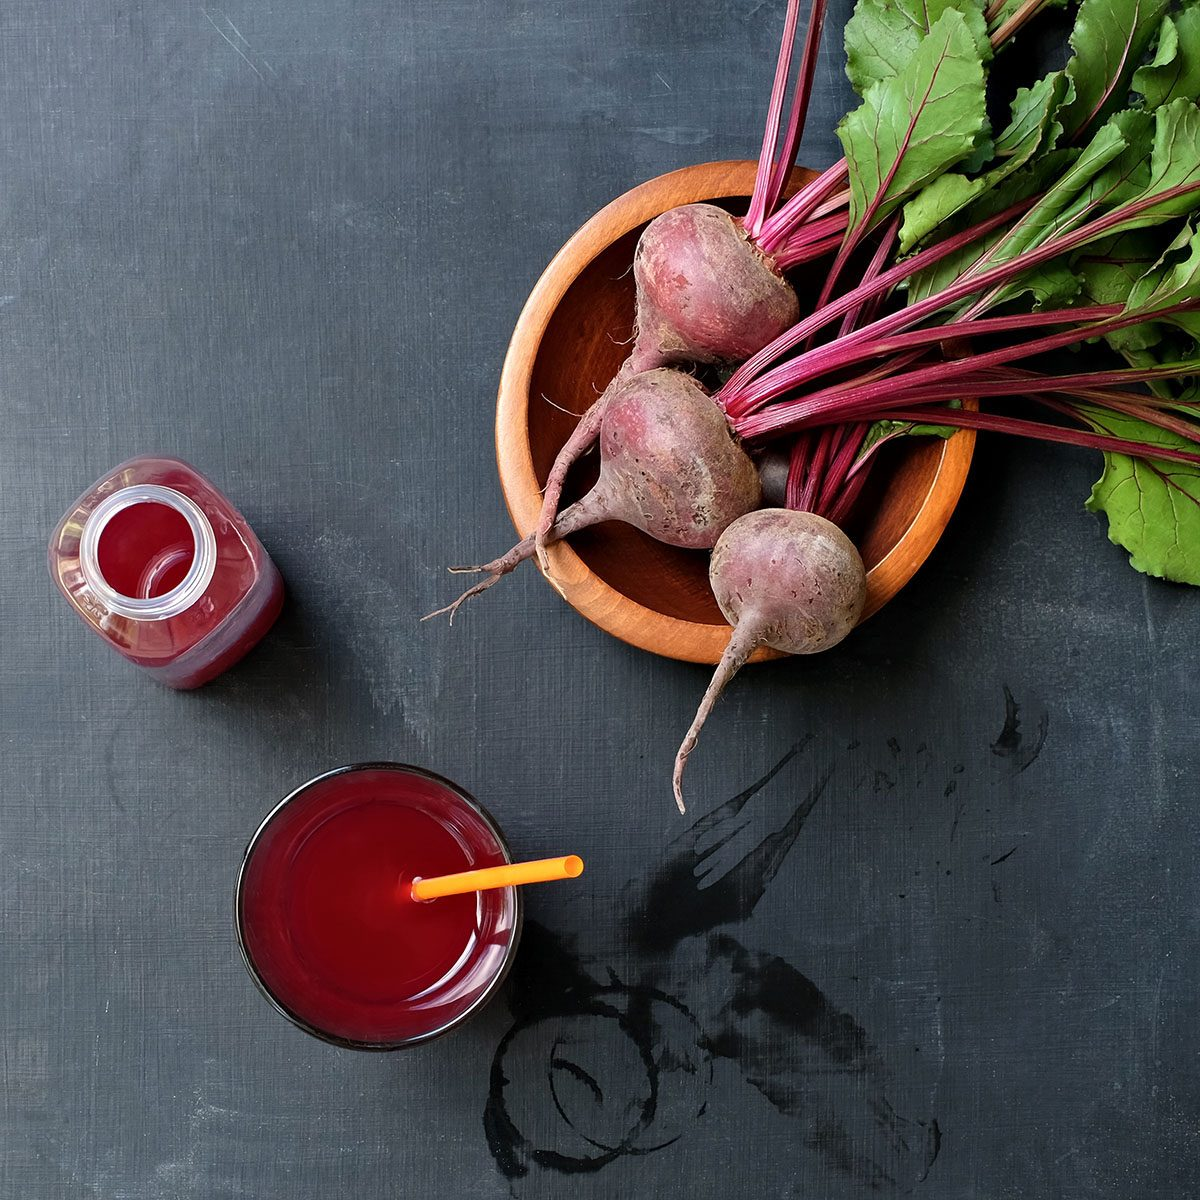 Healthy Beet Juice and Kombucha Drink on Messy Black Slate Table with Fresh Beets in Bowl